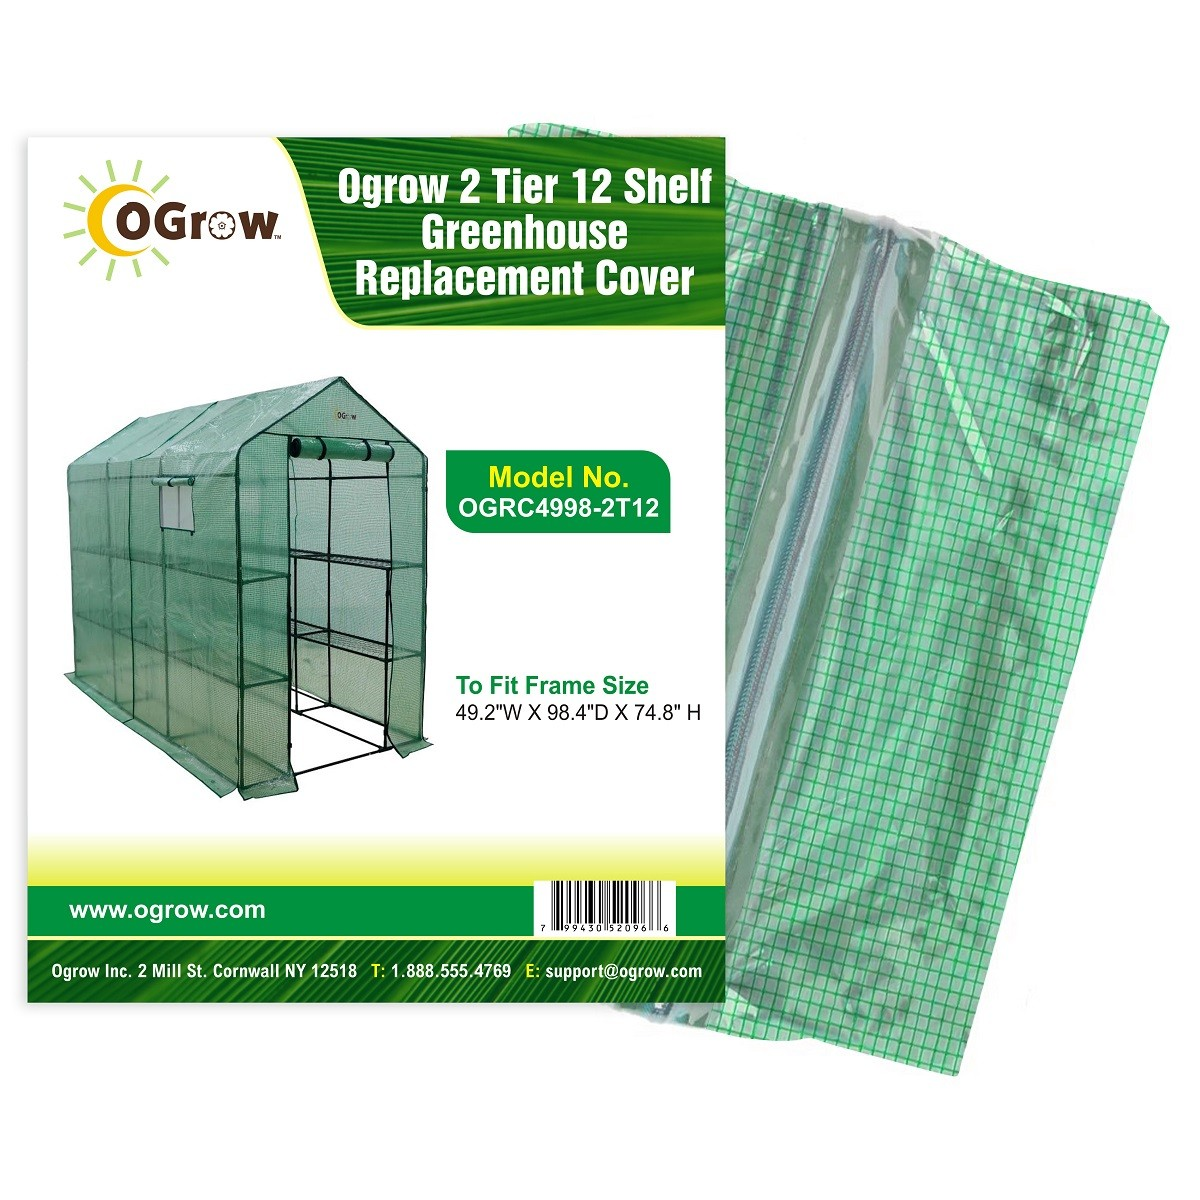 "2 Tier 12 Shelf Polyethylene Plastic Greenhouse Replacement Cover - 49.2"" W X 98.4"" D X 74.8"" H - Green"